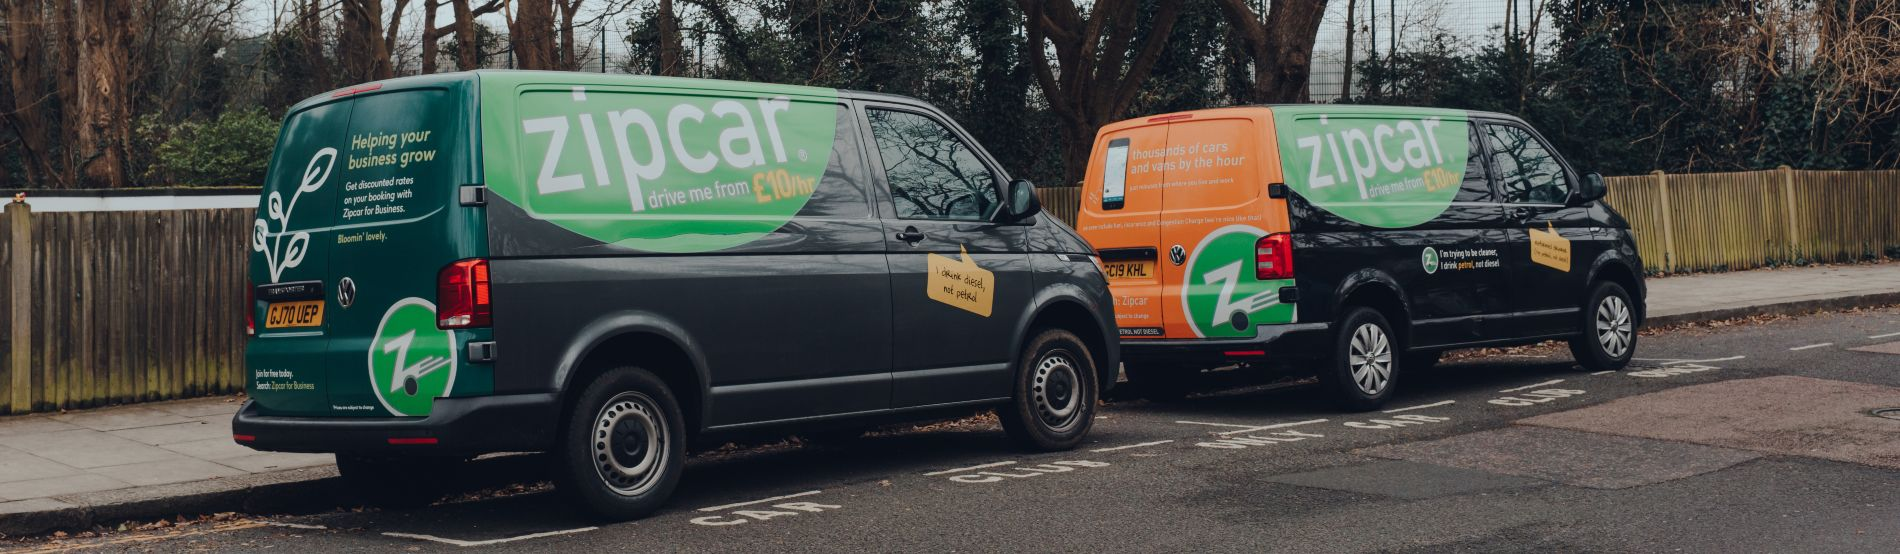 Zipcar vans parked on a street in Muswell Hill, North London, UK.